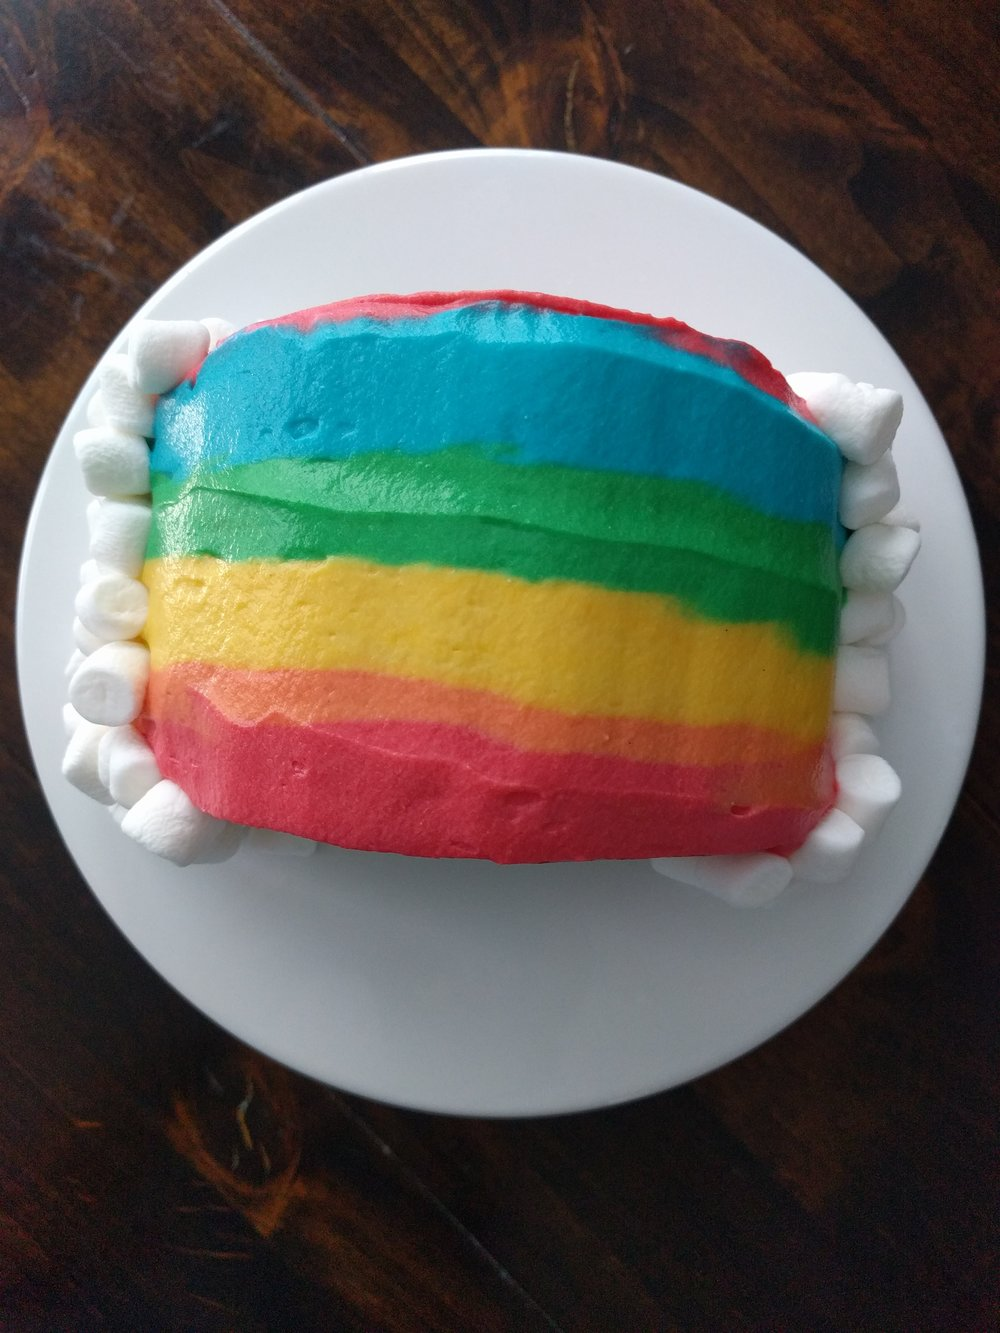 Do not try this at home. It is indescribably difficult to apply runny frosting in a rainbow of colors to a small cake.